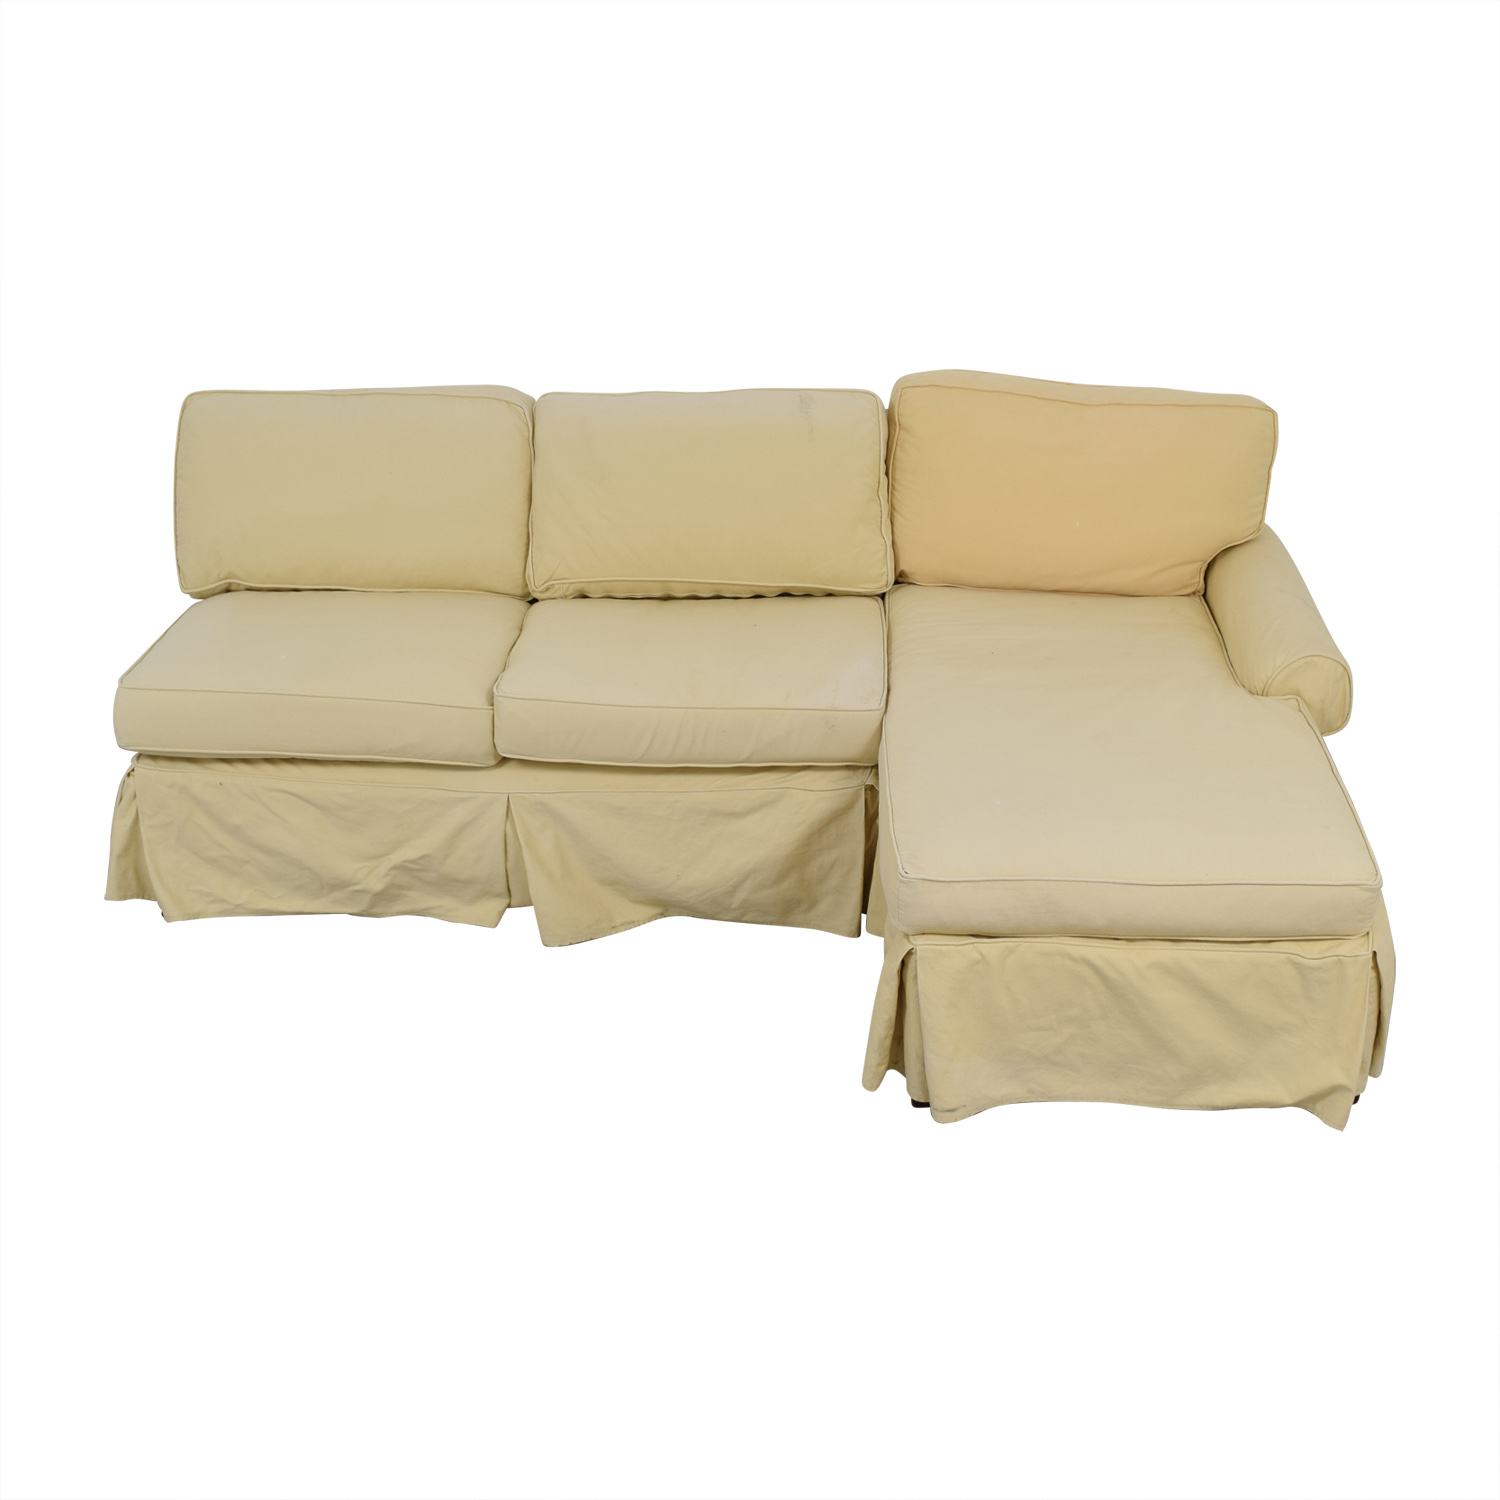 Mitchell Gold + Bob Williams Mitchell Gold + Bob Williams Tan Sectional dimensions